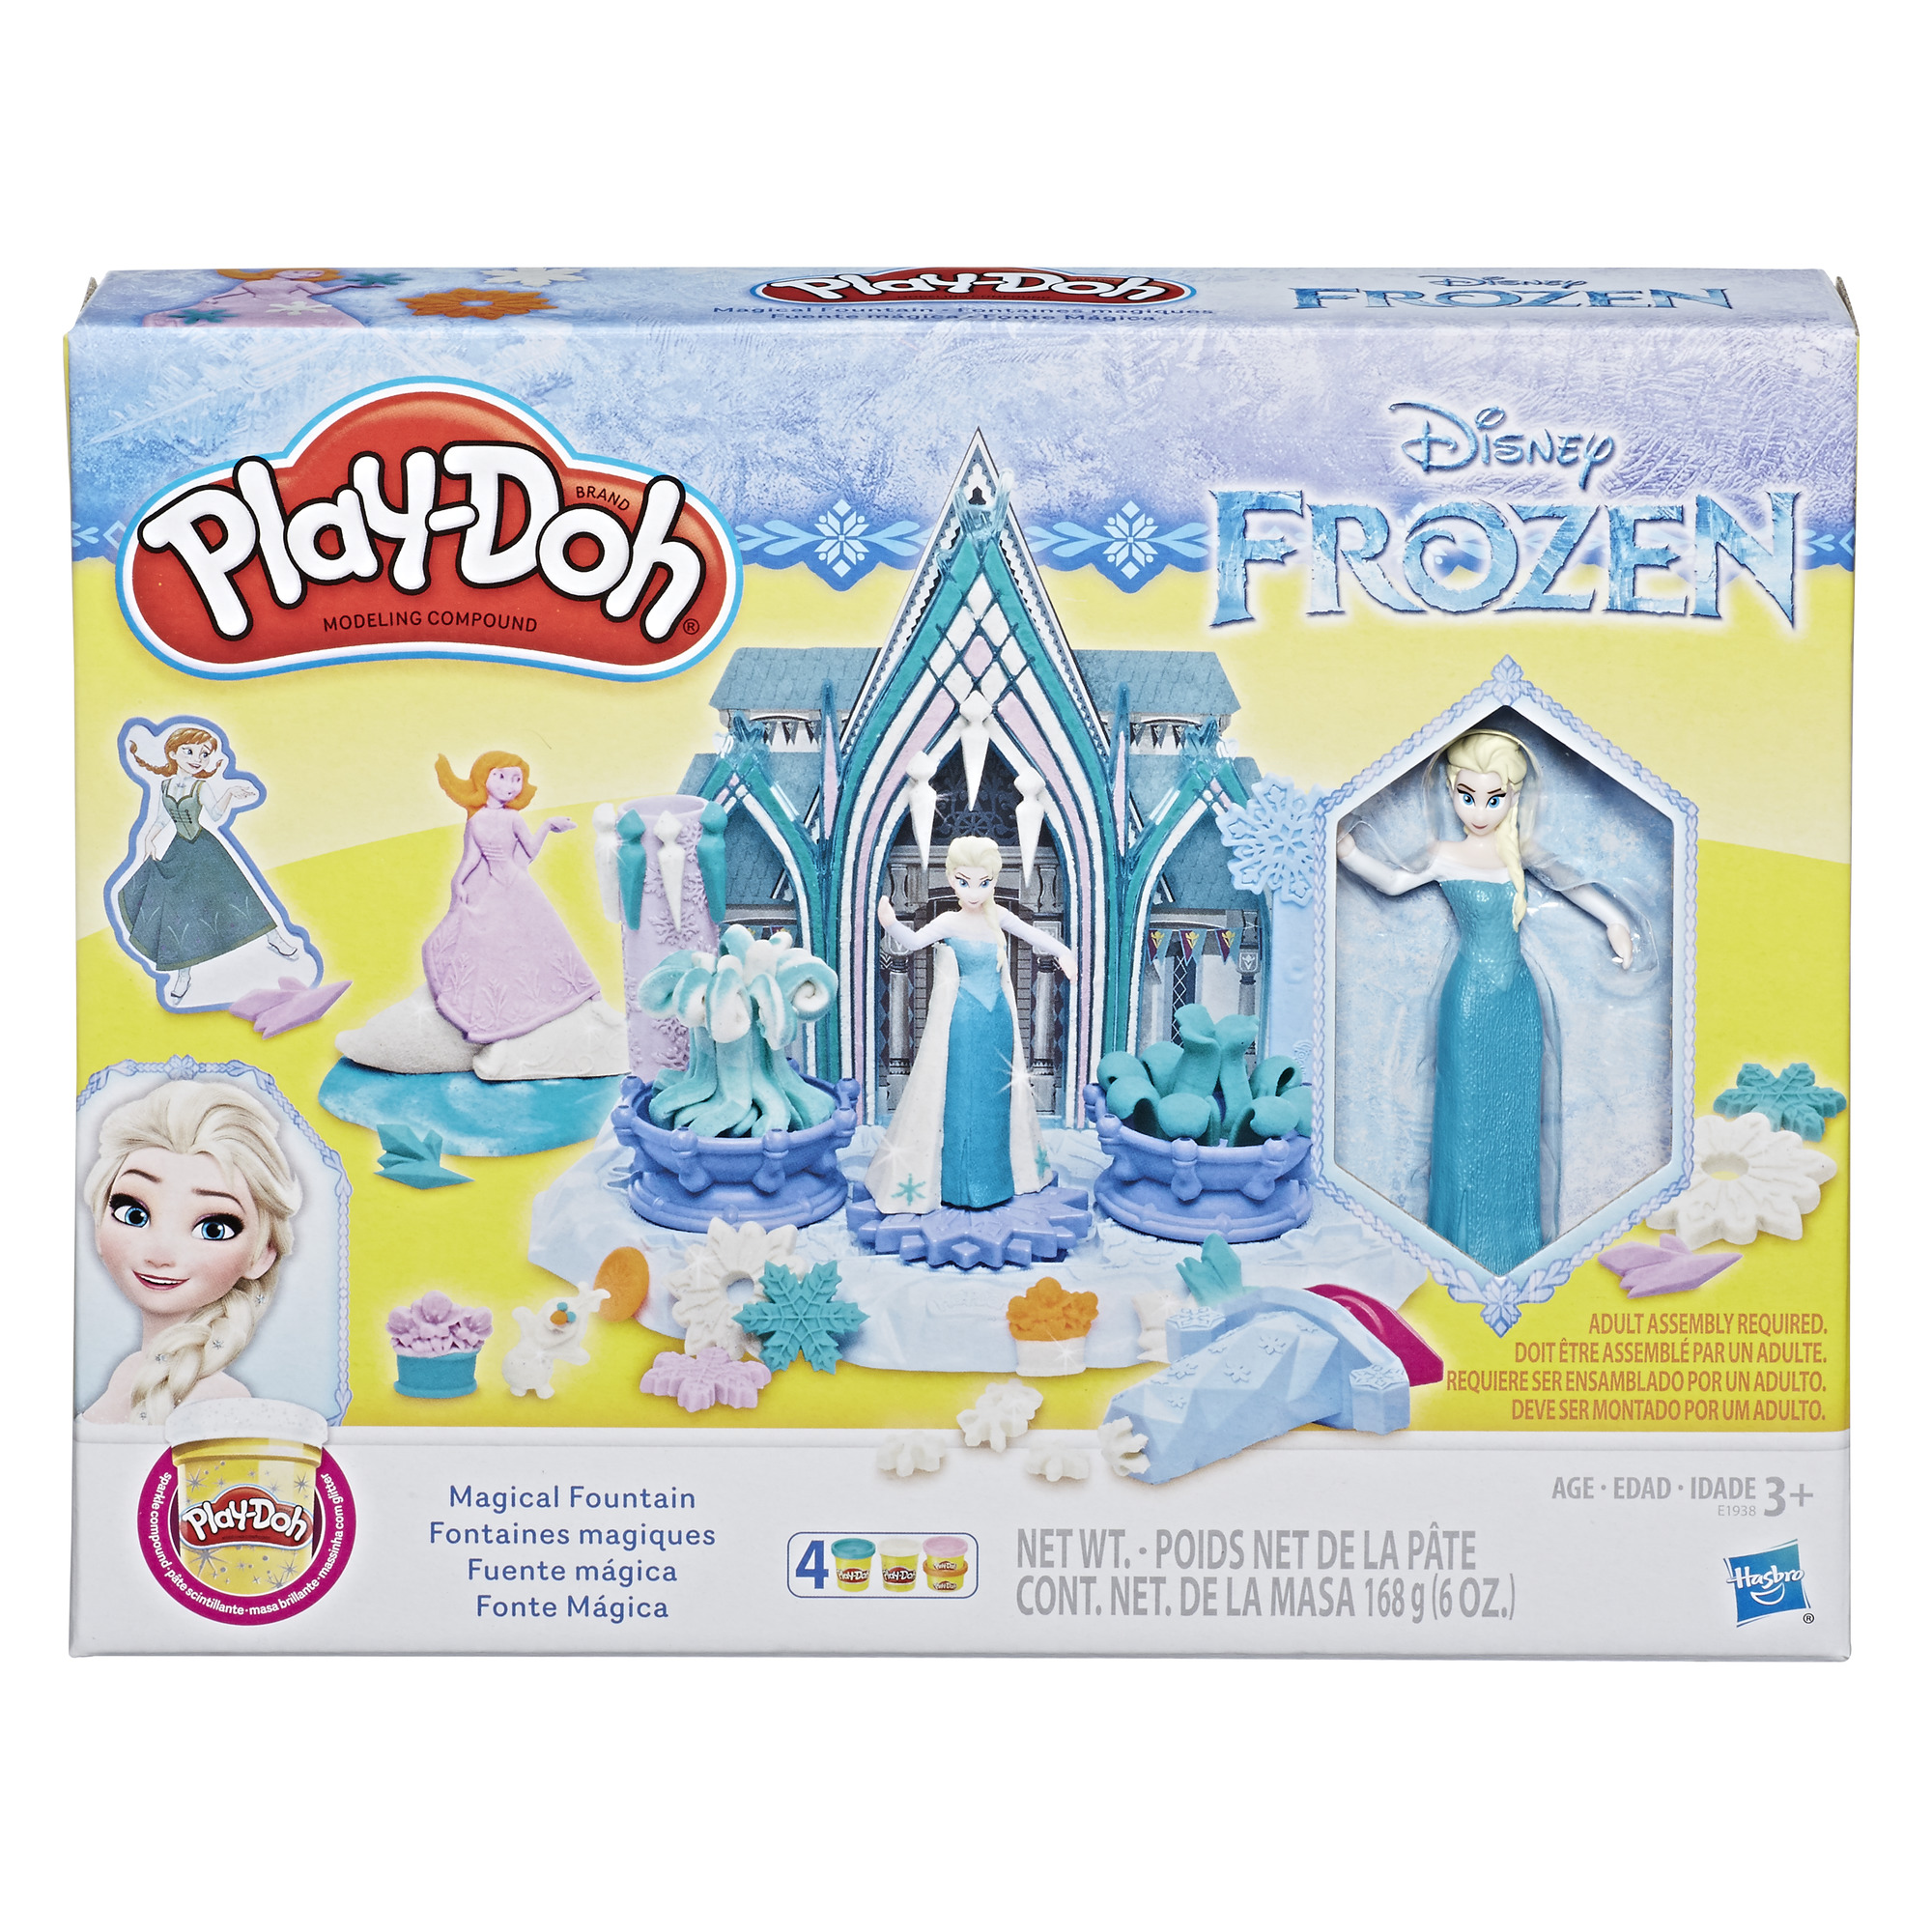 Play-Doh Disney Frozen Magical Fountain with 4 cans of Play-Doh